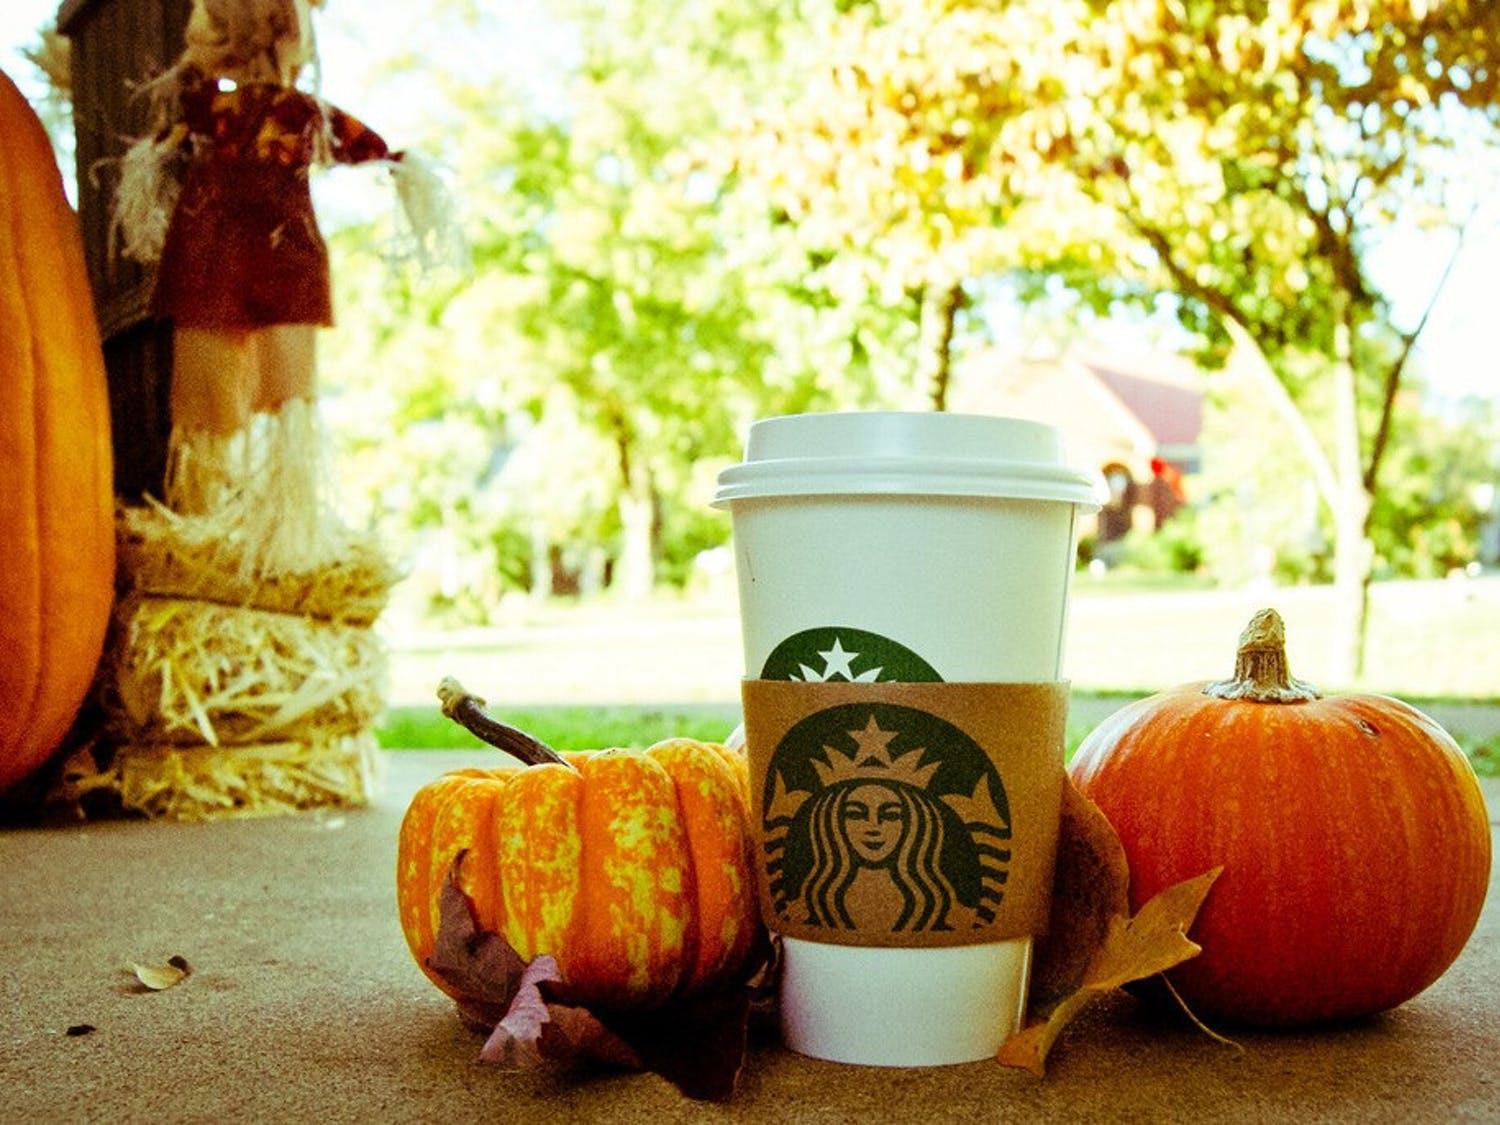 Since Starbucks debuted their pumpkin spice latte, the beverage has been a hallmark of the fall season nationwide.